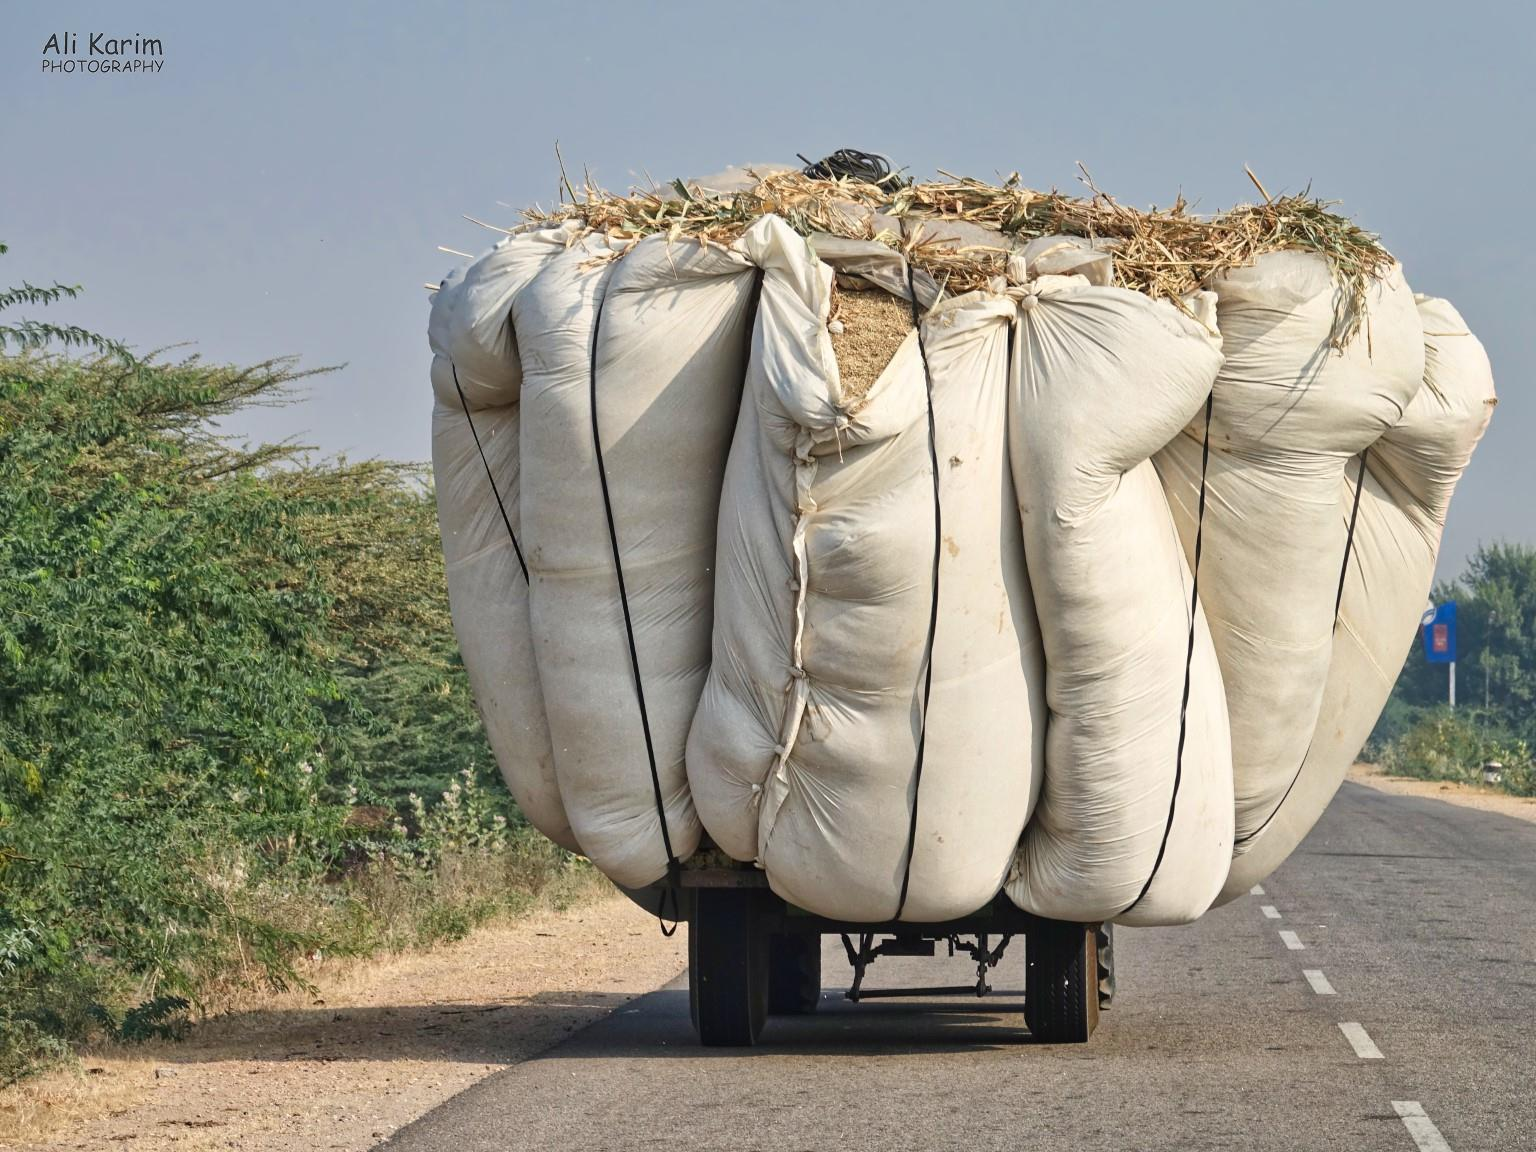 Bikaner, Rajasthan Transporting hay/grains